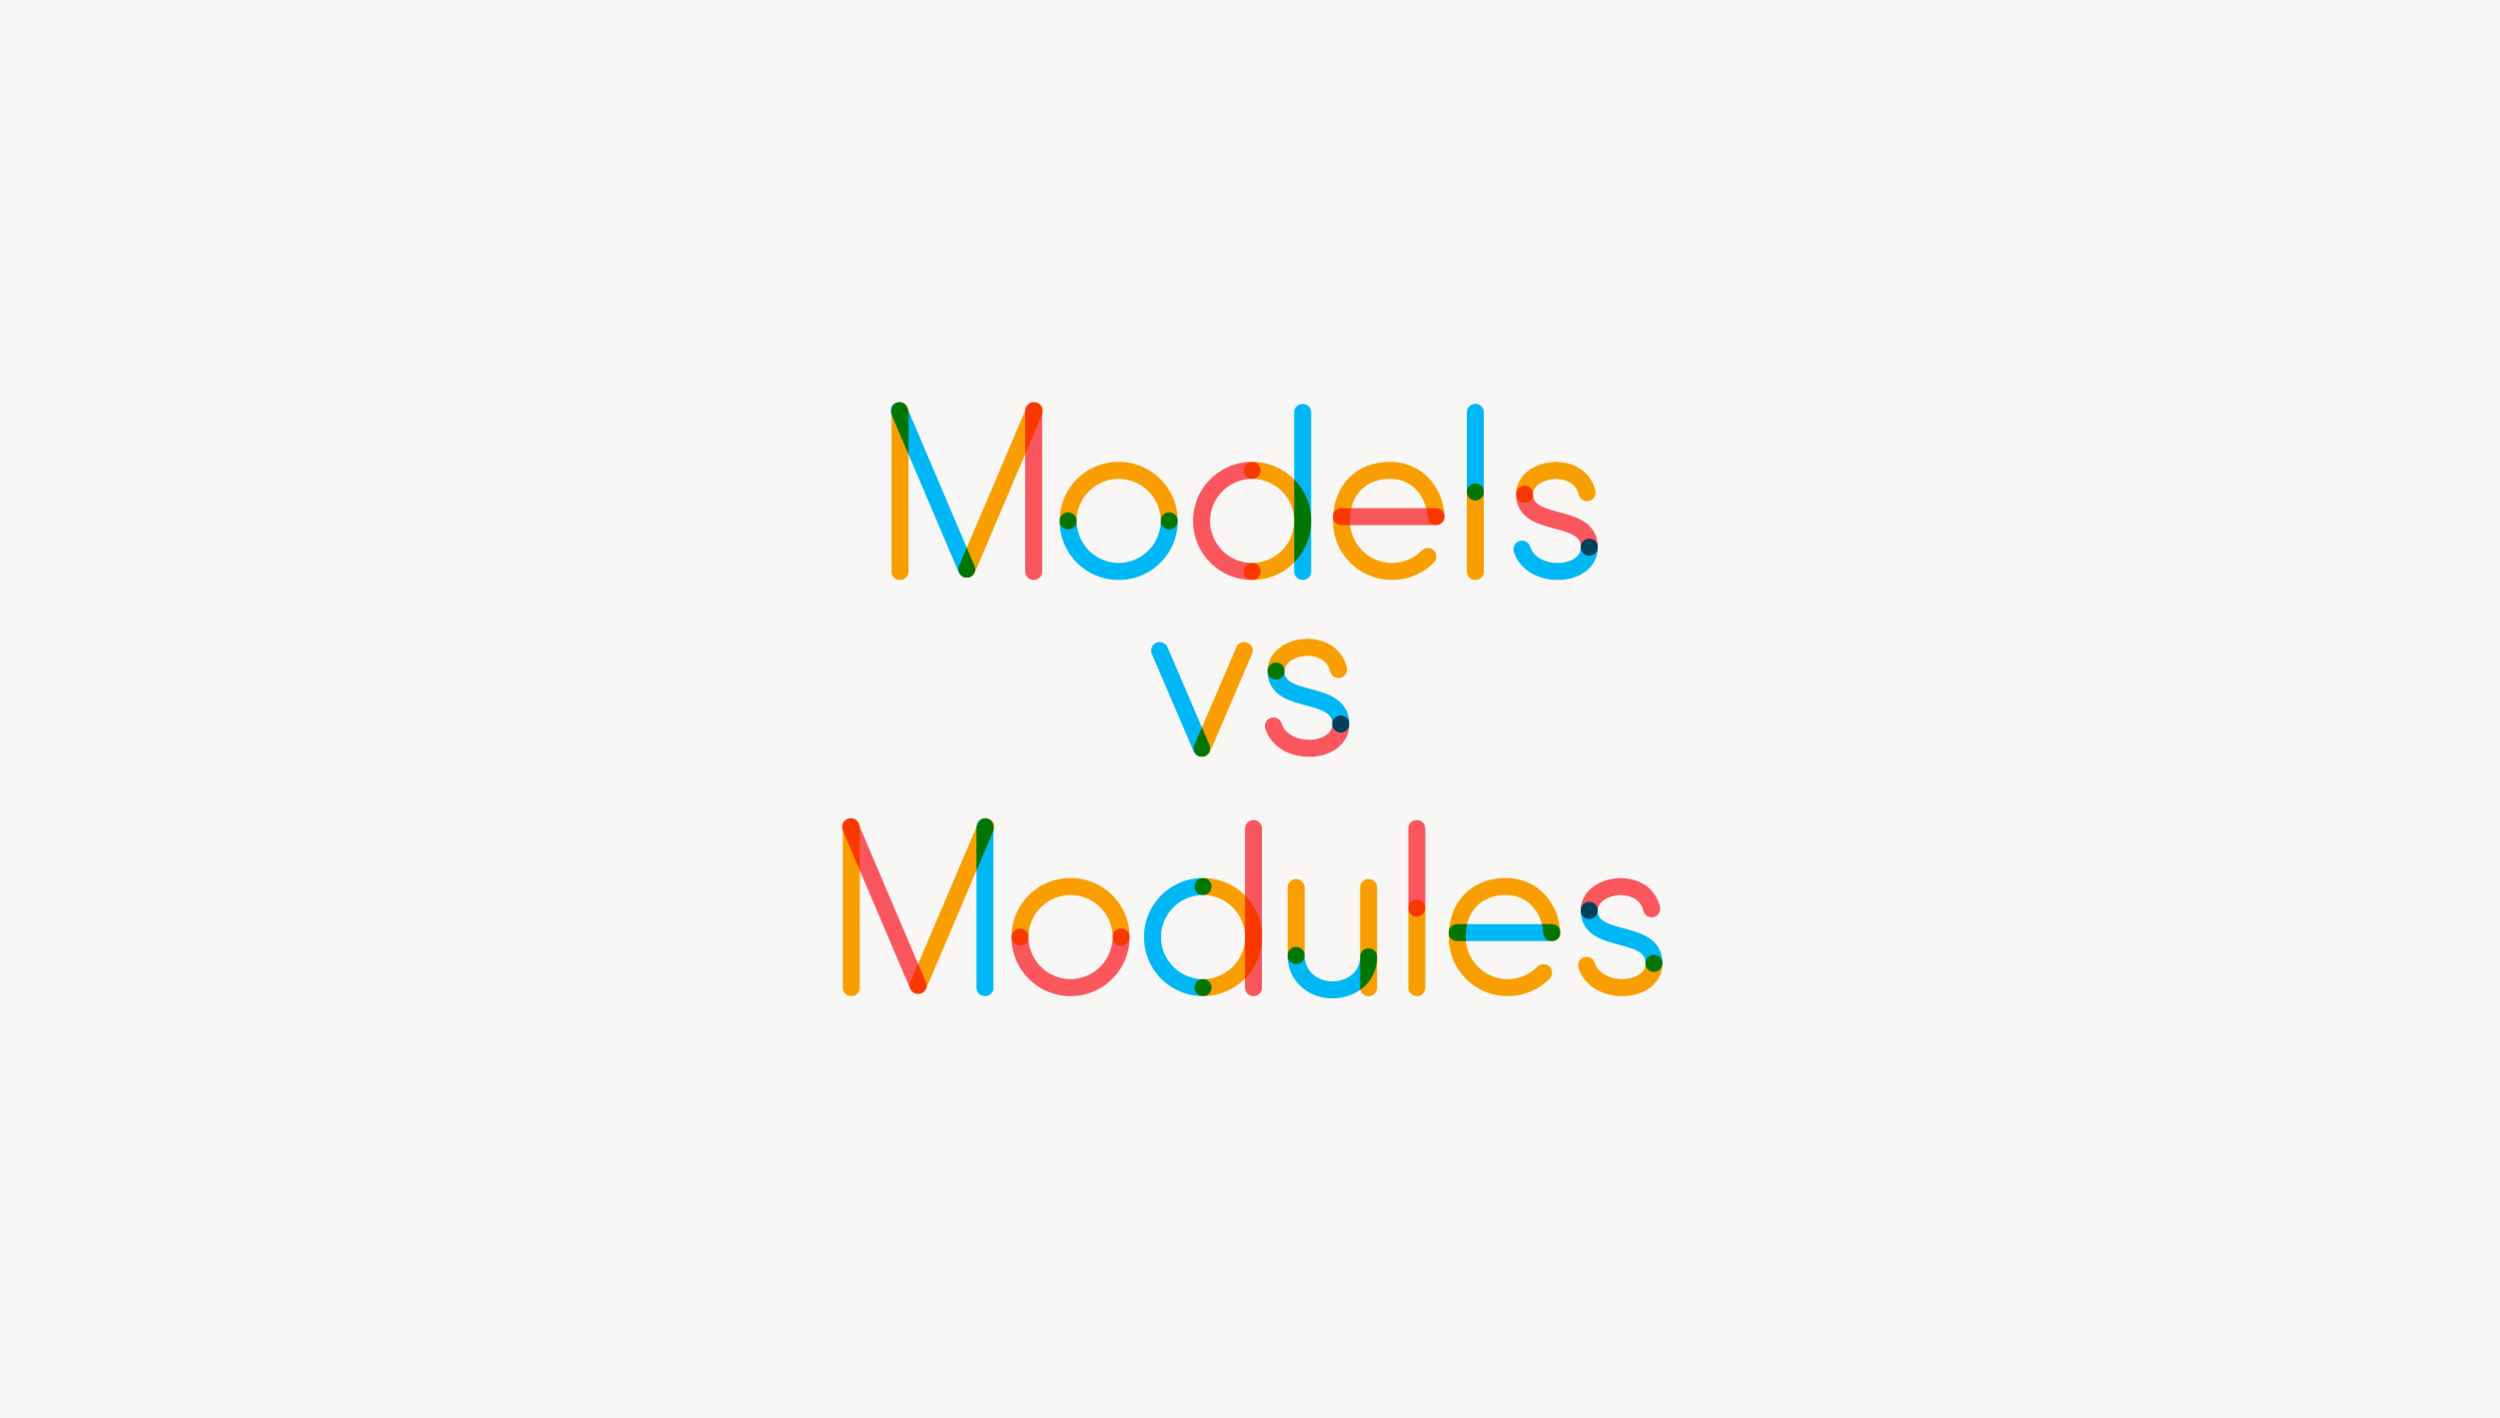 Models_Modules.png